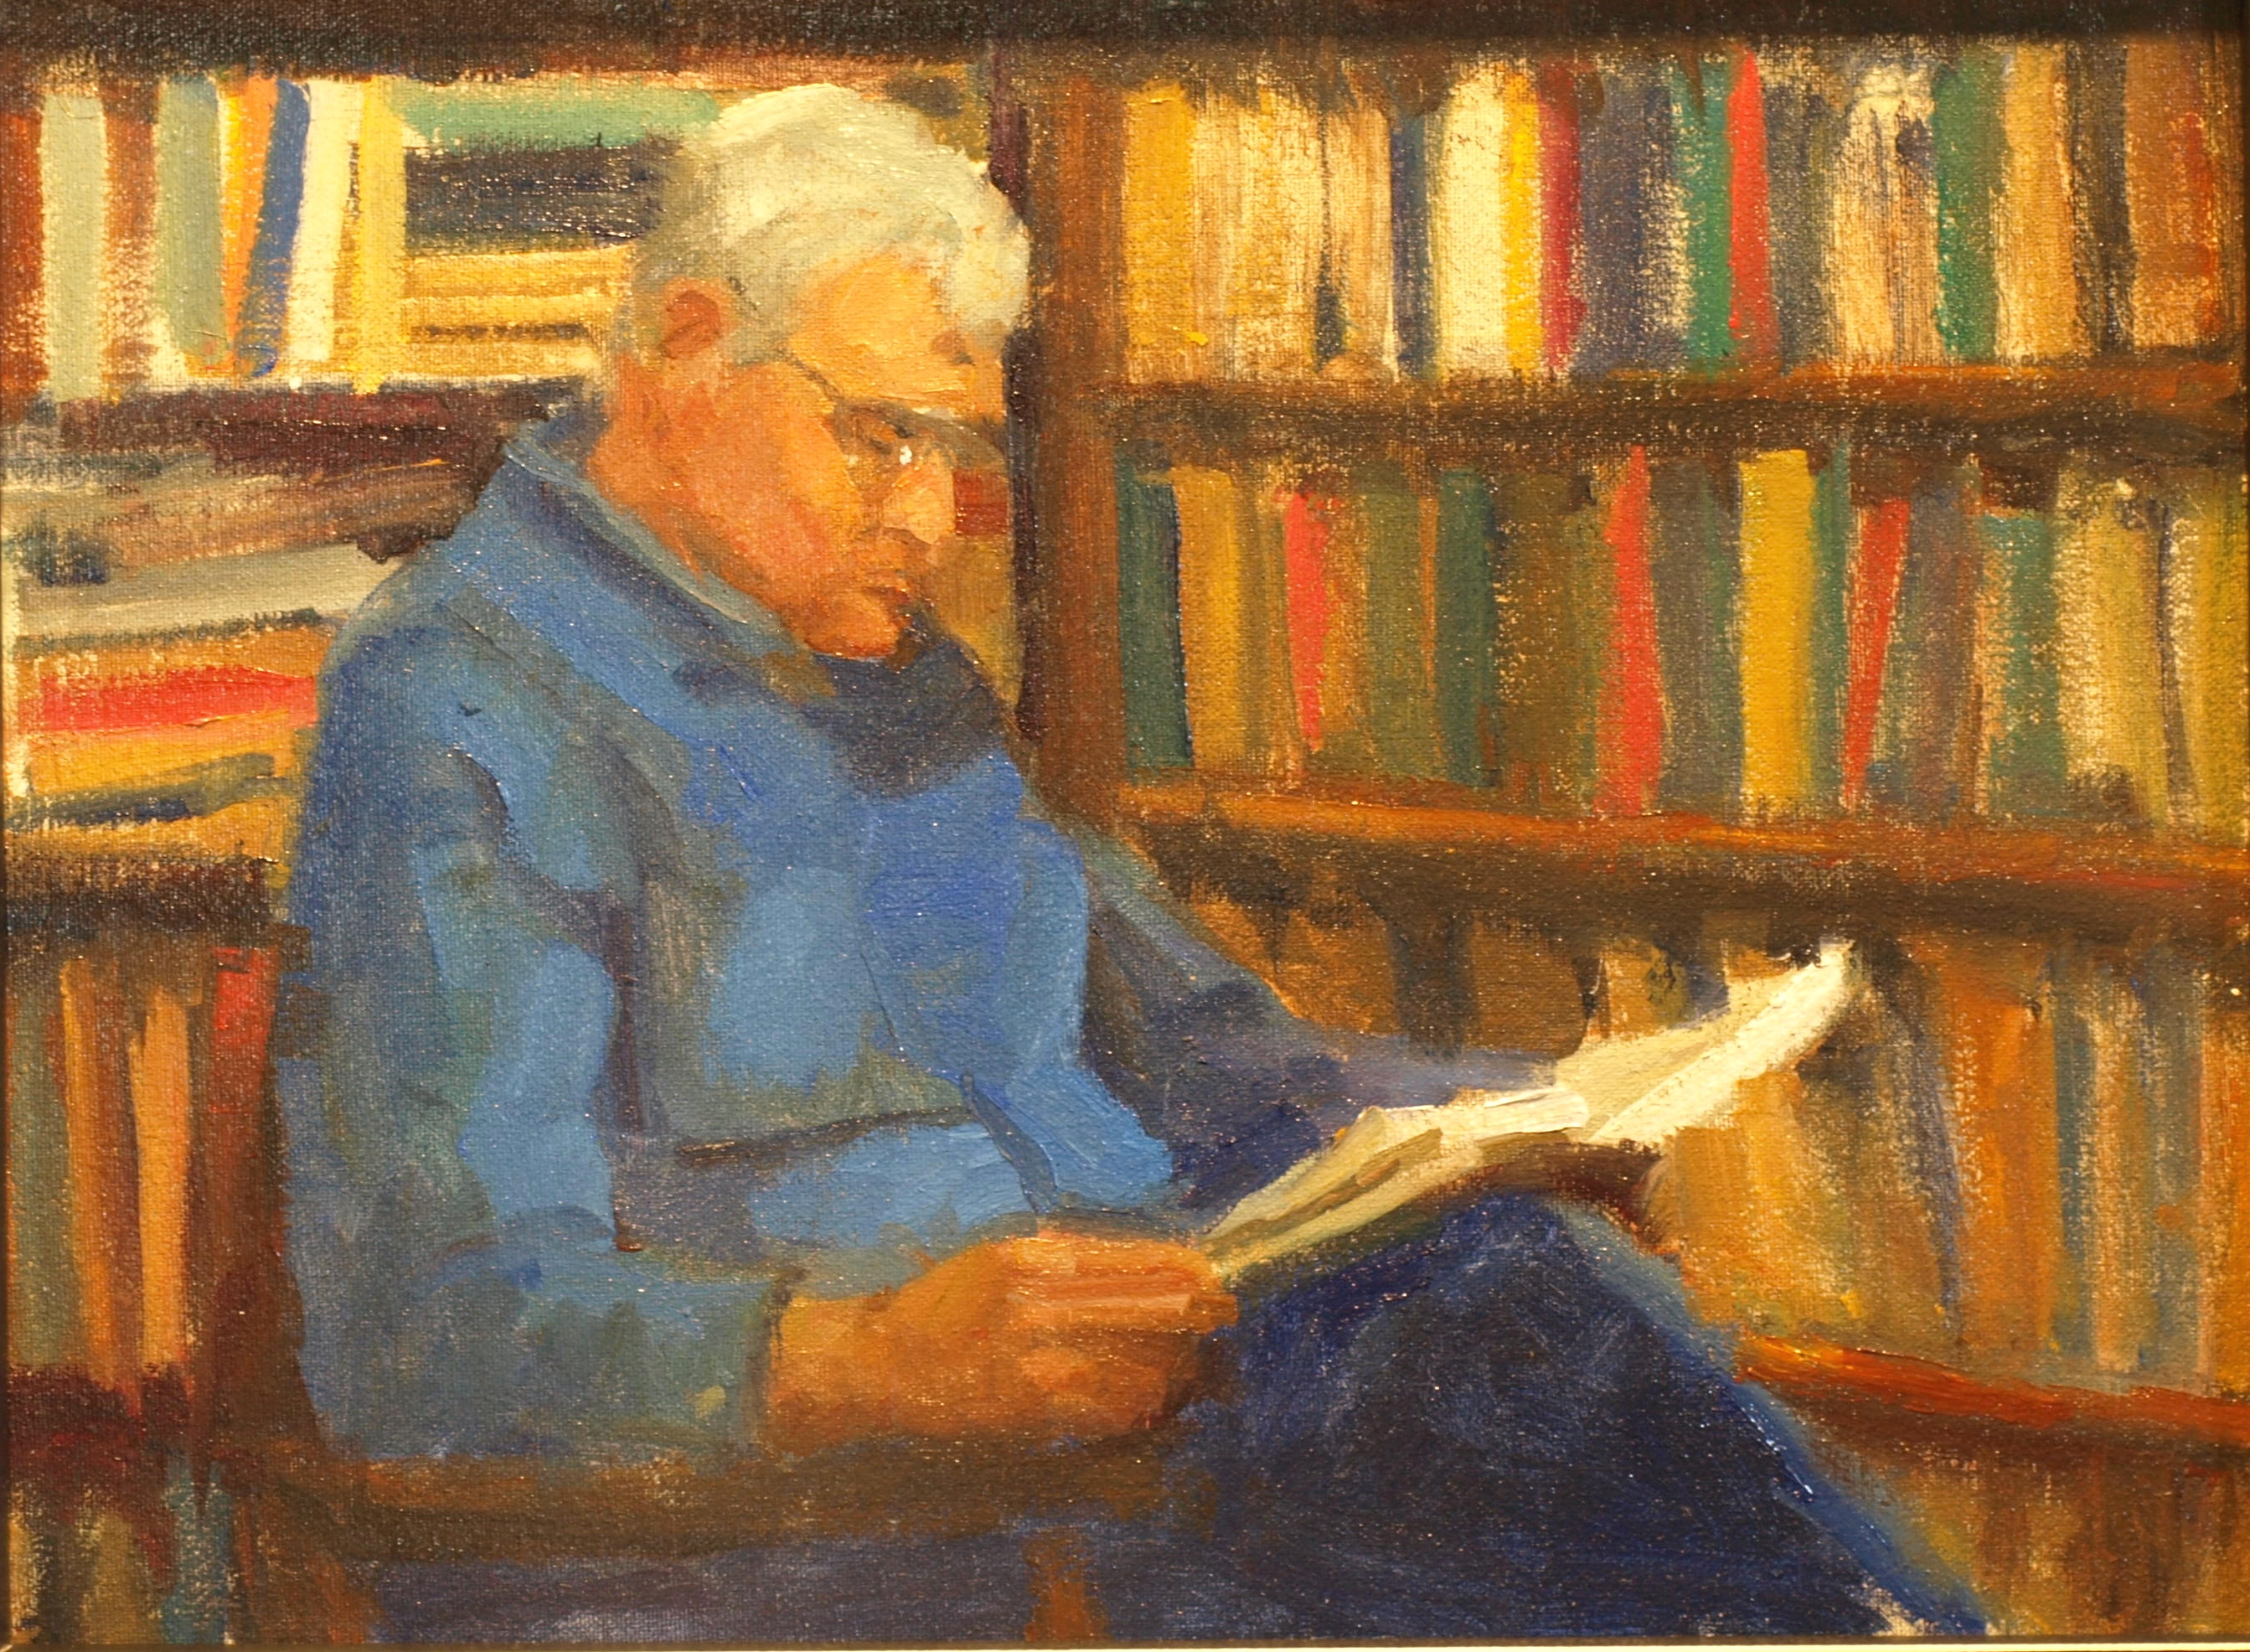 Library, Oil on Canvas on Panel, 12 x 16 Inches, by Susan Grisell, $325